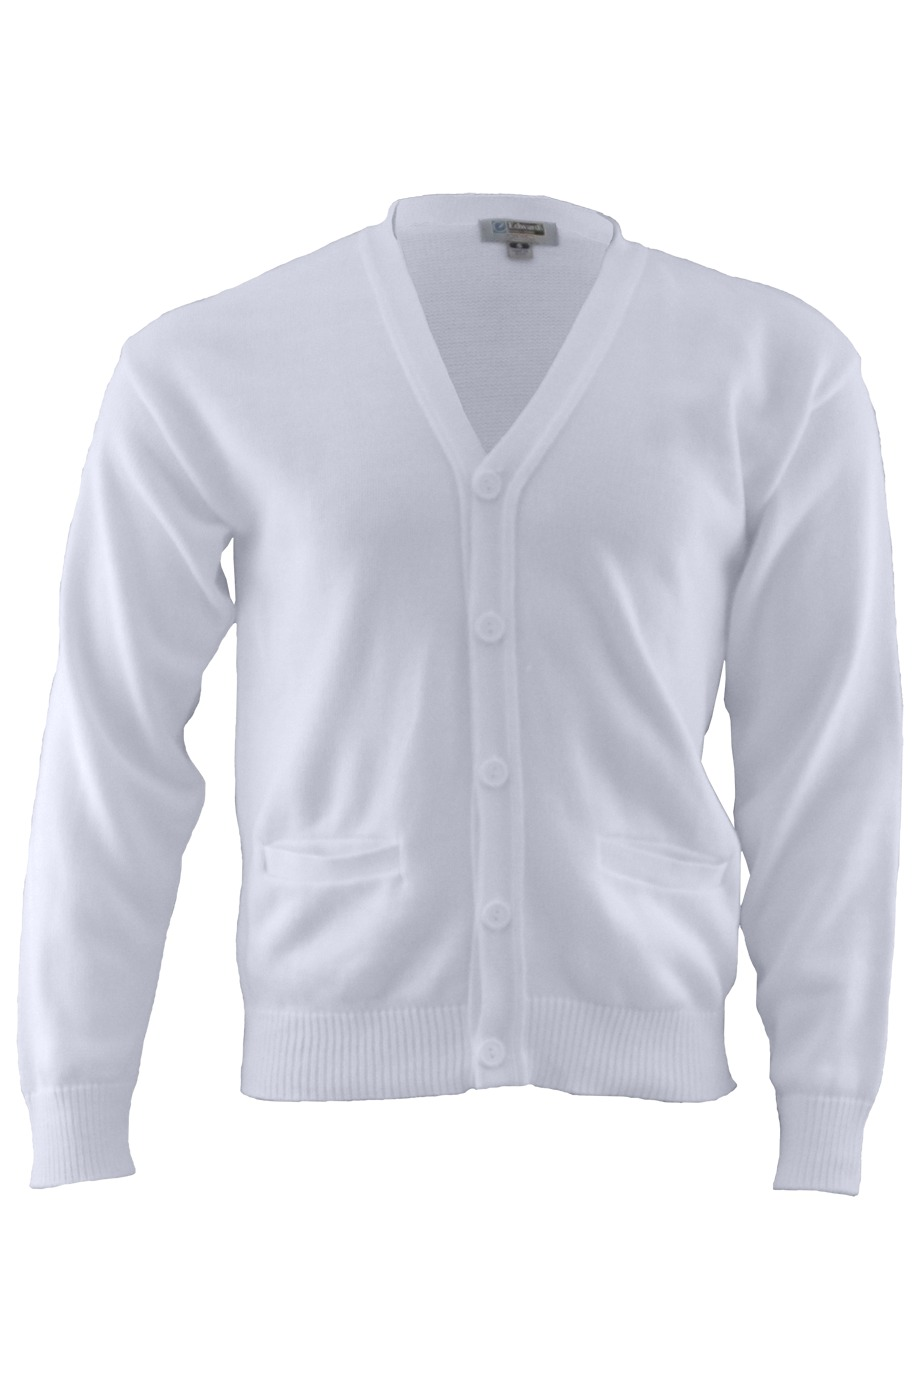 Edwards Garment 350 - V-Neck Pocket Cardigan